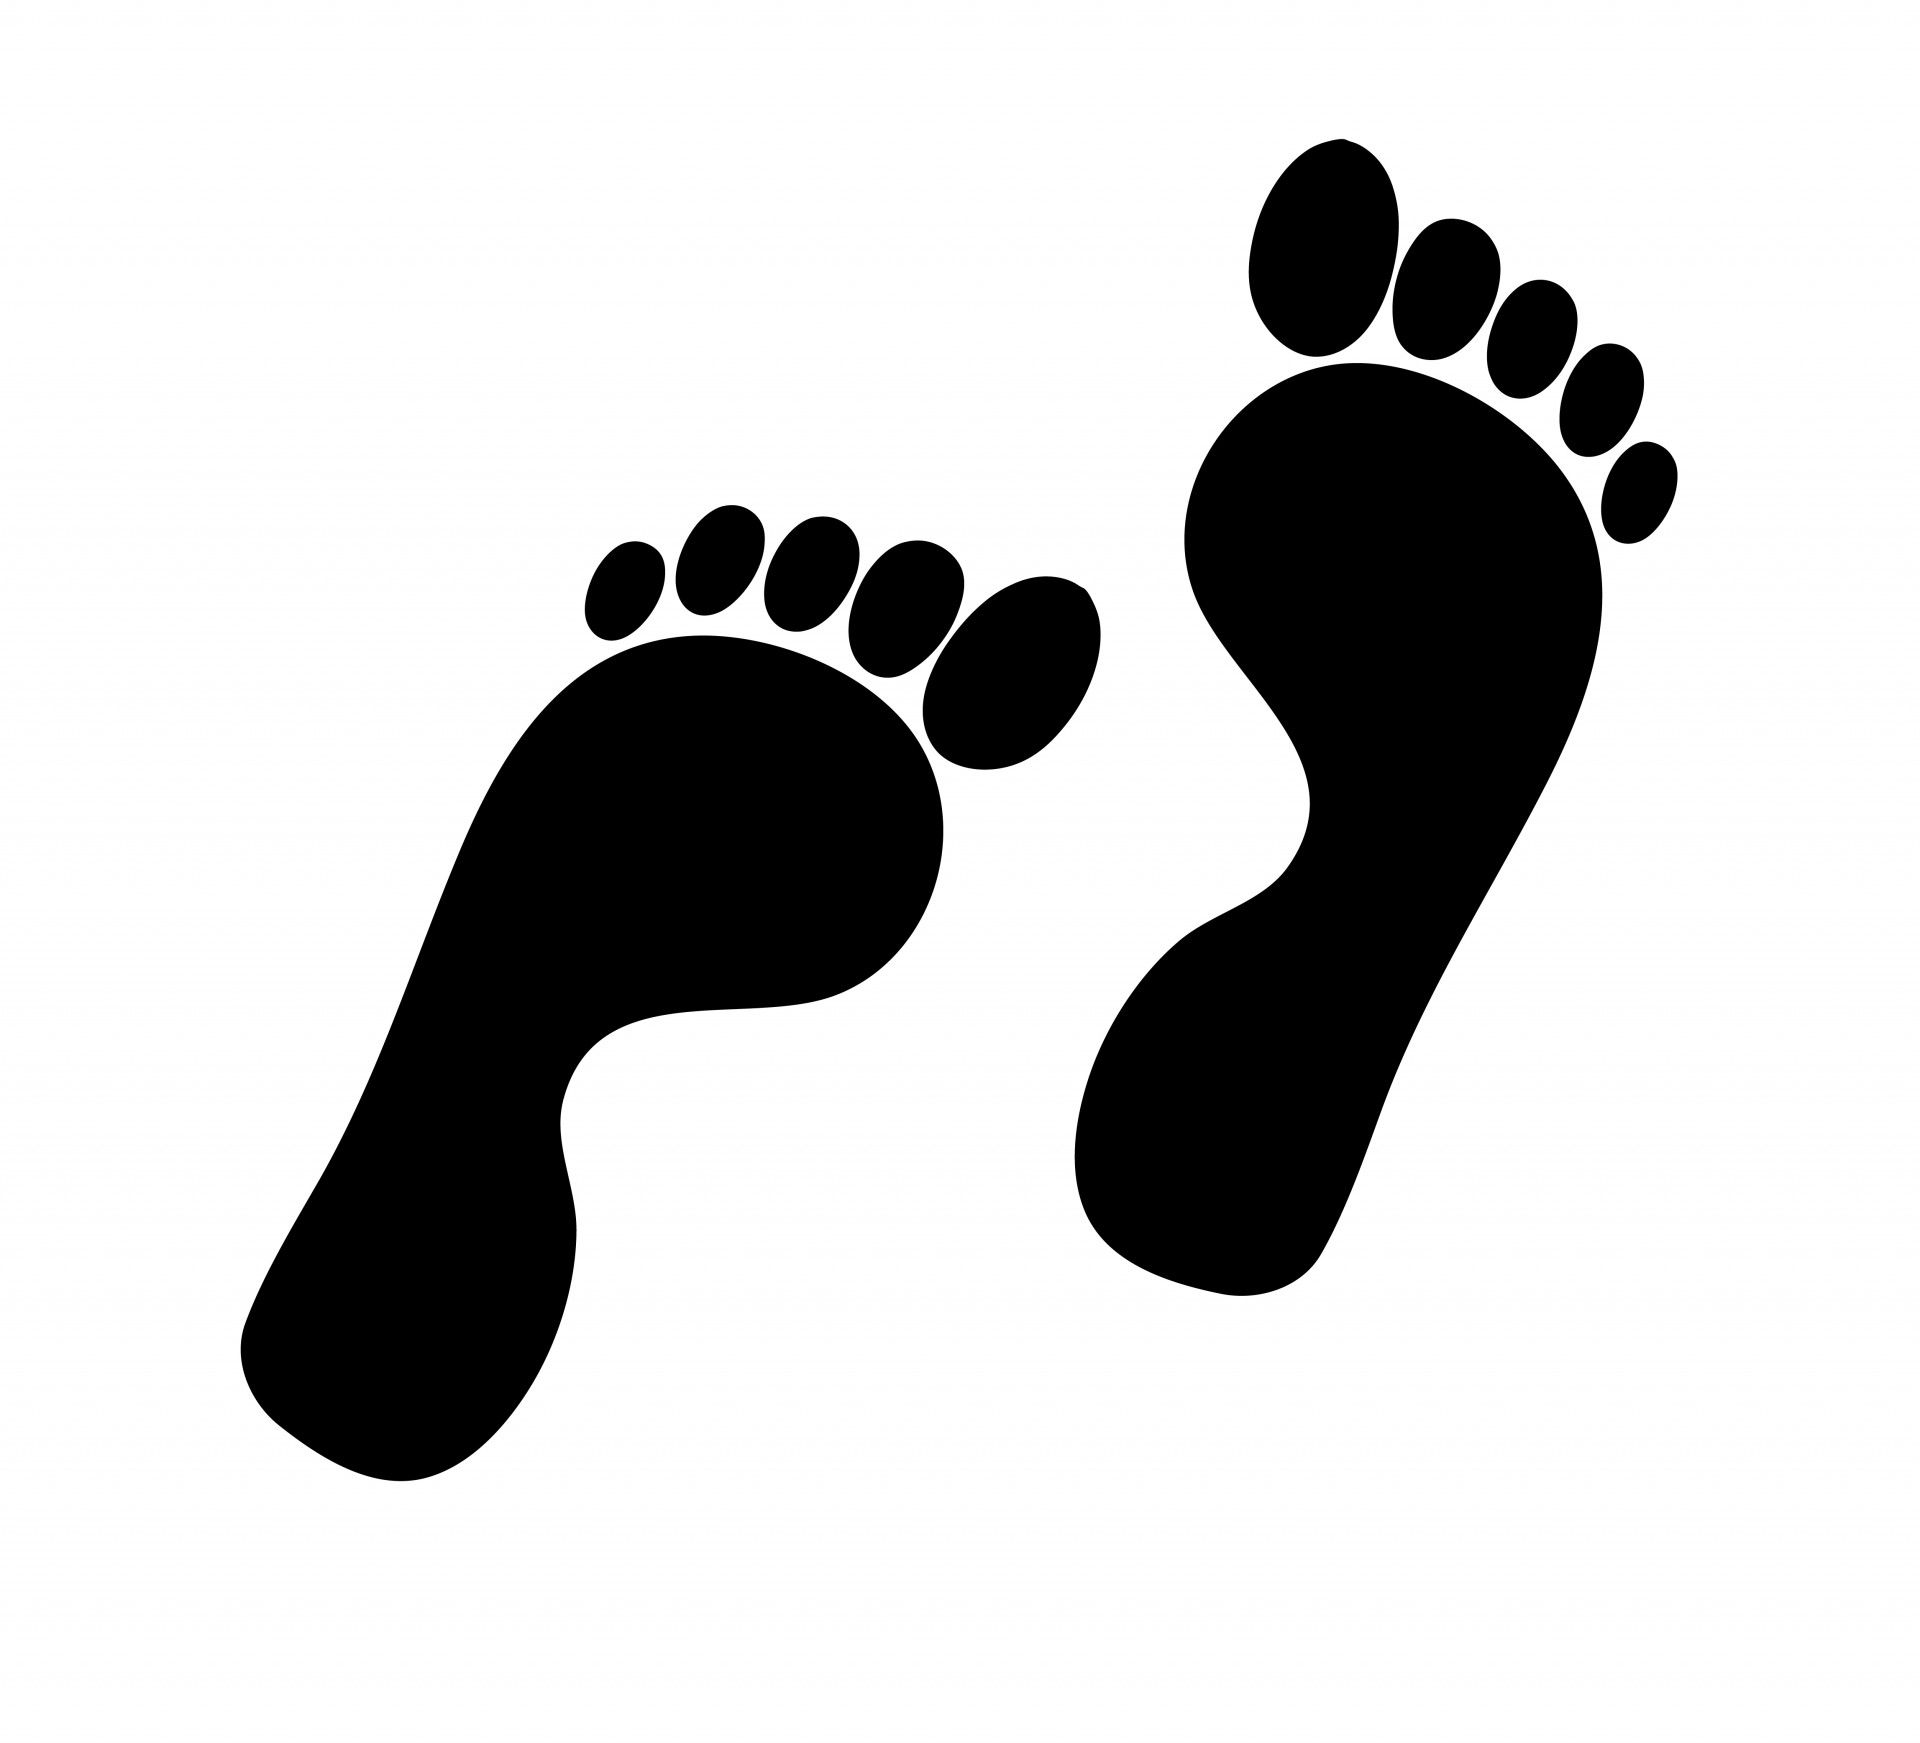 1920x1743 Footprints Silhouette Clipart Free Stock Photo